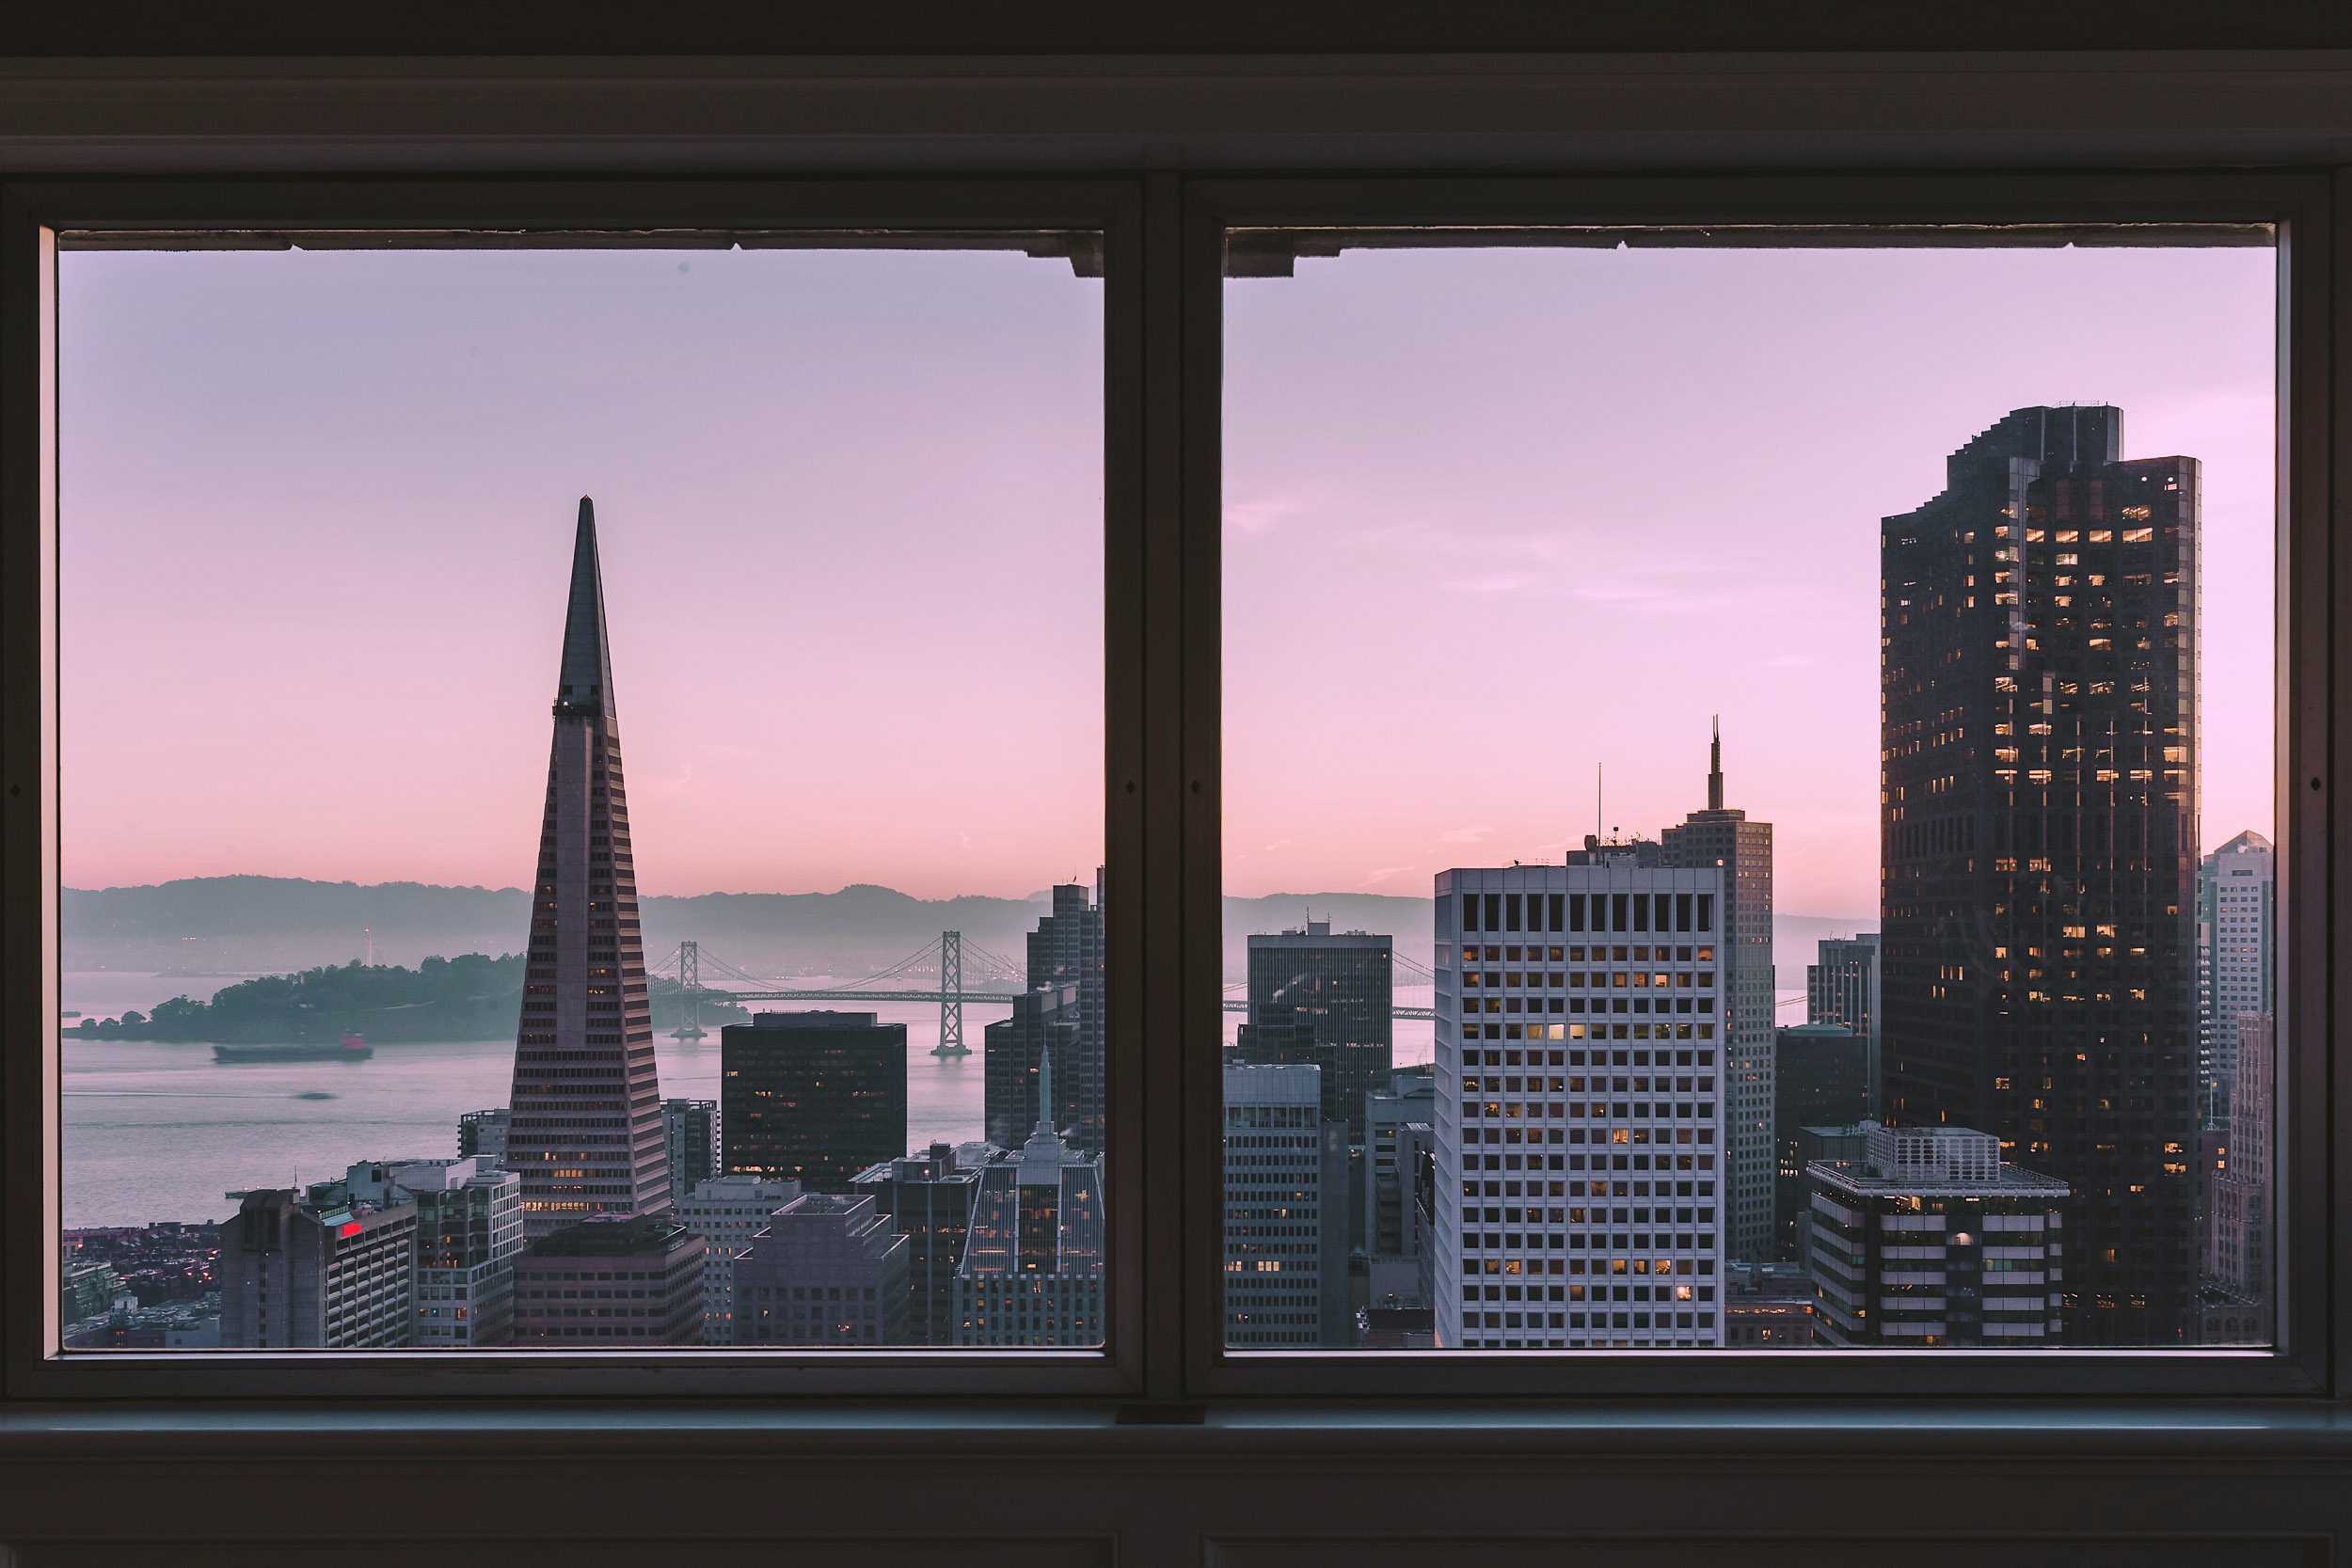 Sunrise views of San Francisco from bed in the Presidential Suite at the Fairmont San Francisco